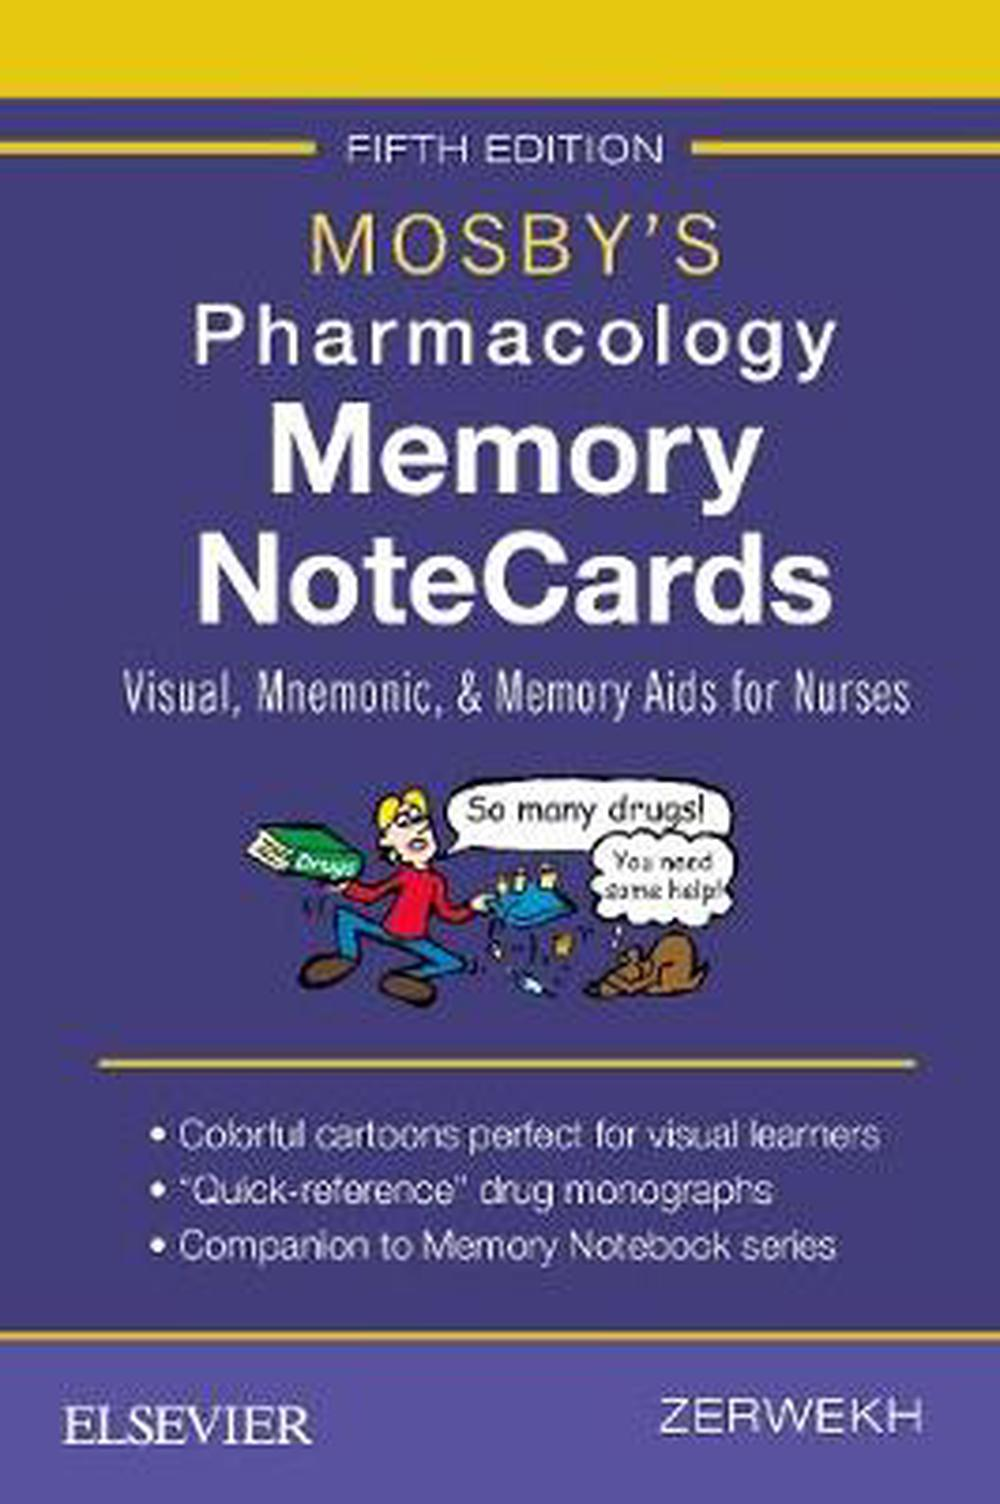 Mosby's Pharmacology Memory NoteCards: Visual, Mnemonic, and Memory Aids for Nurses, 5e